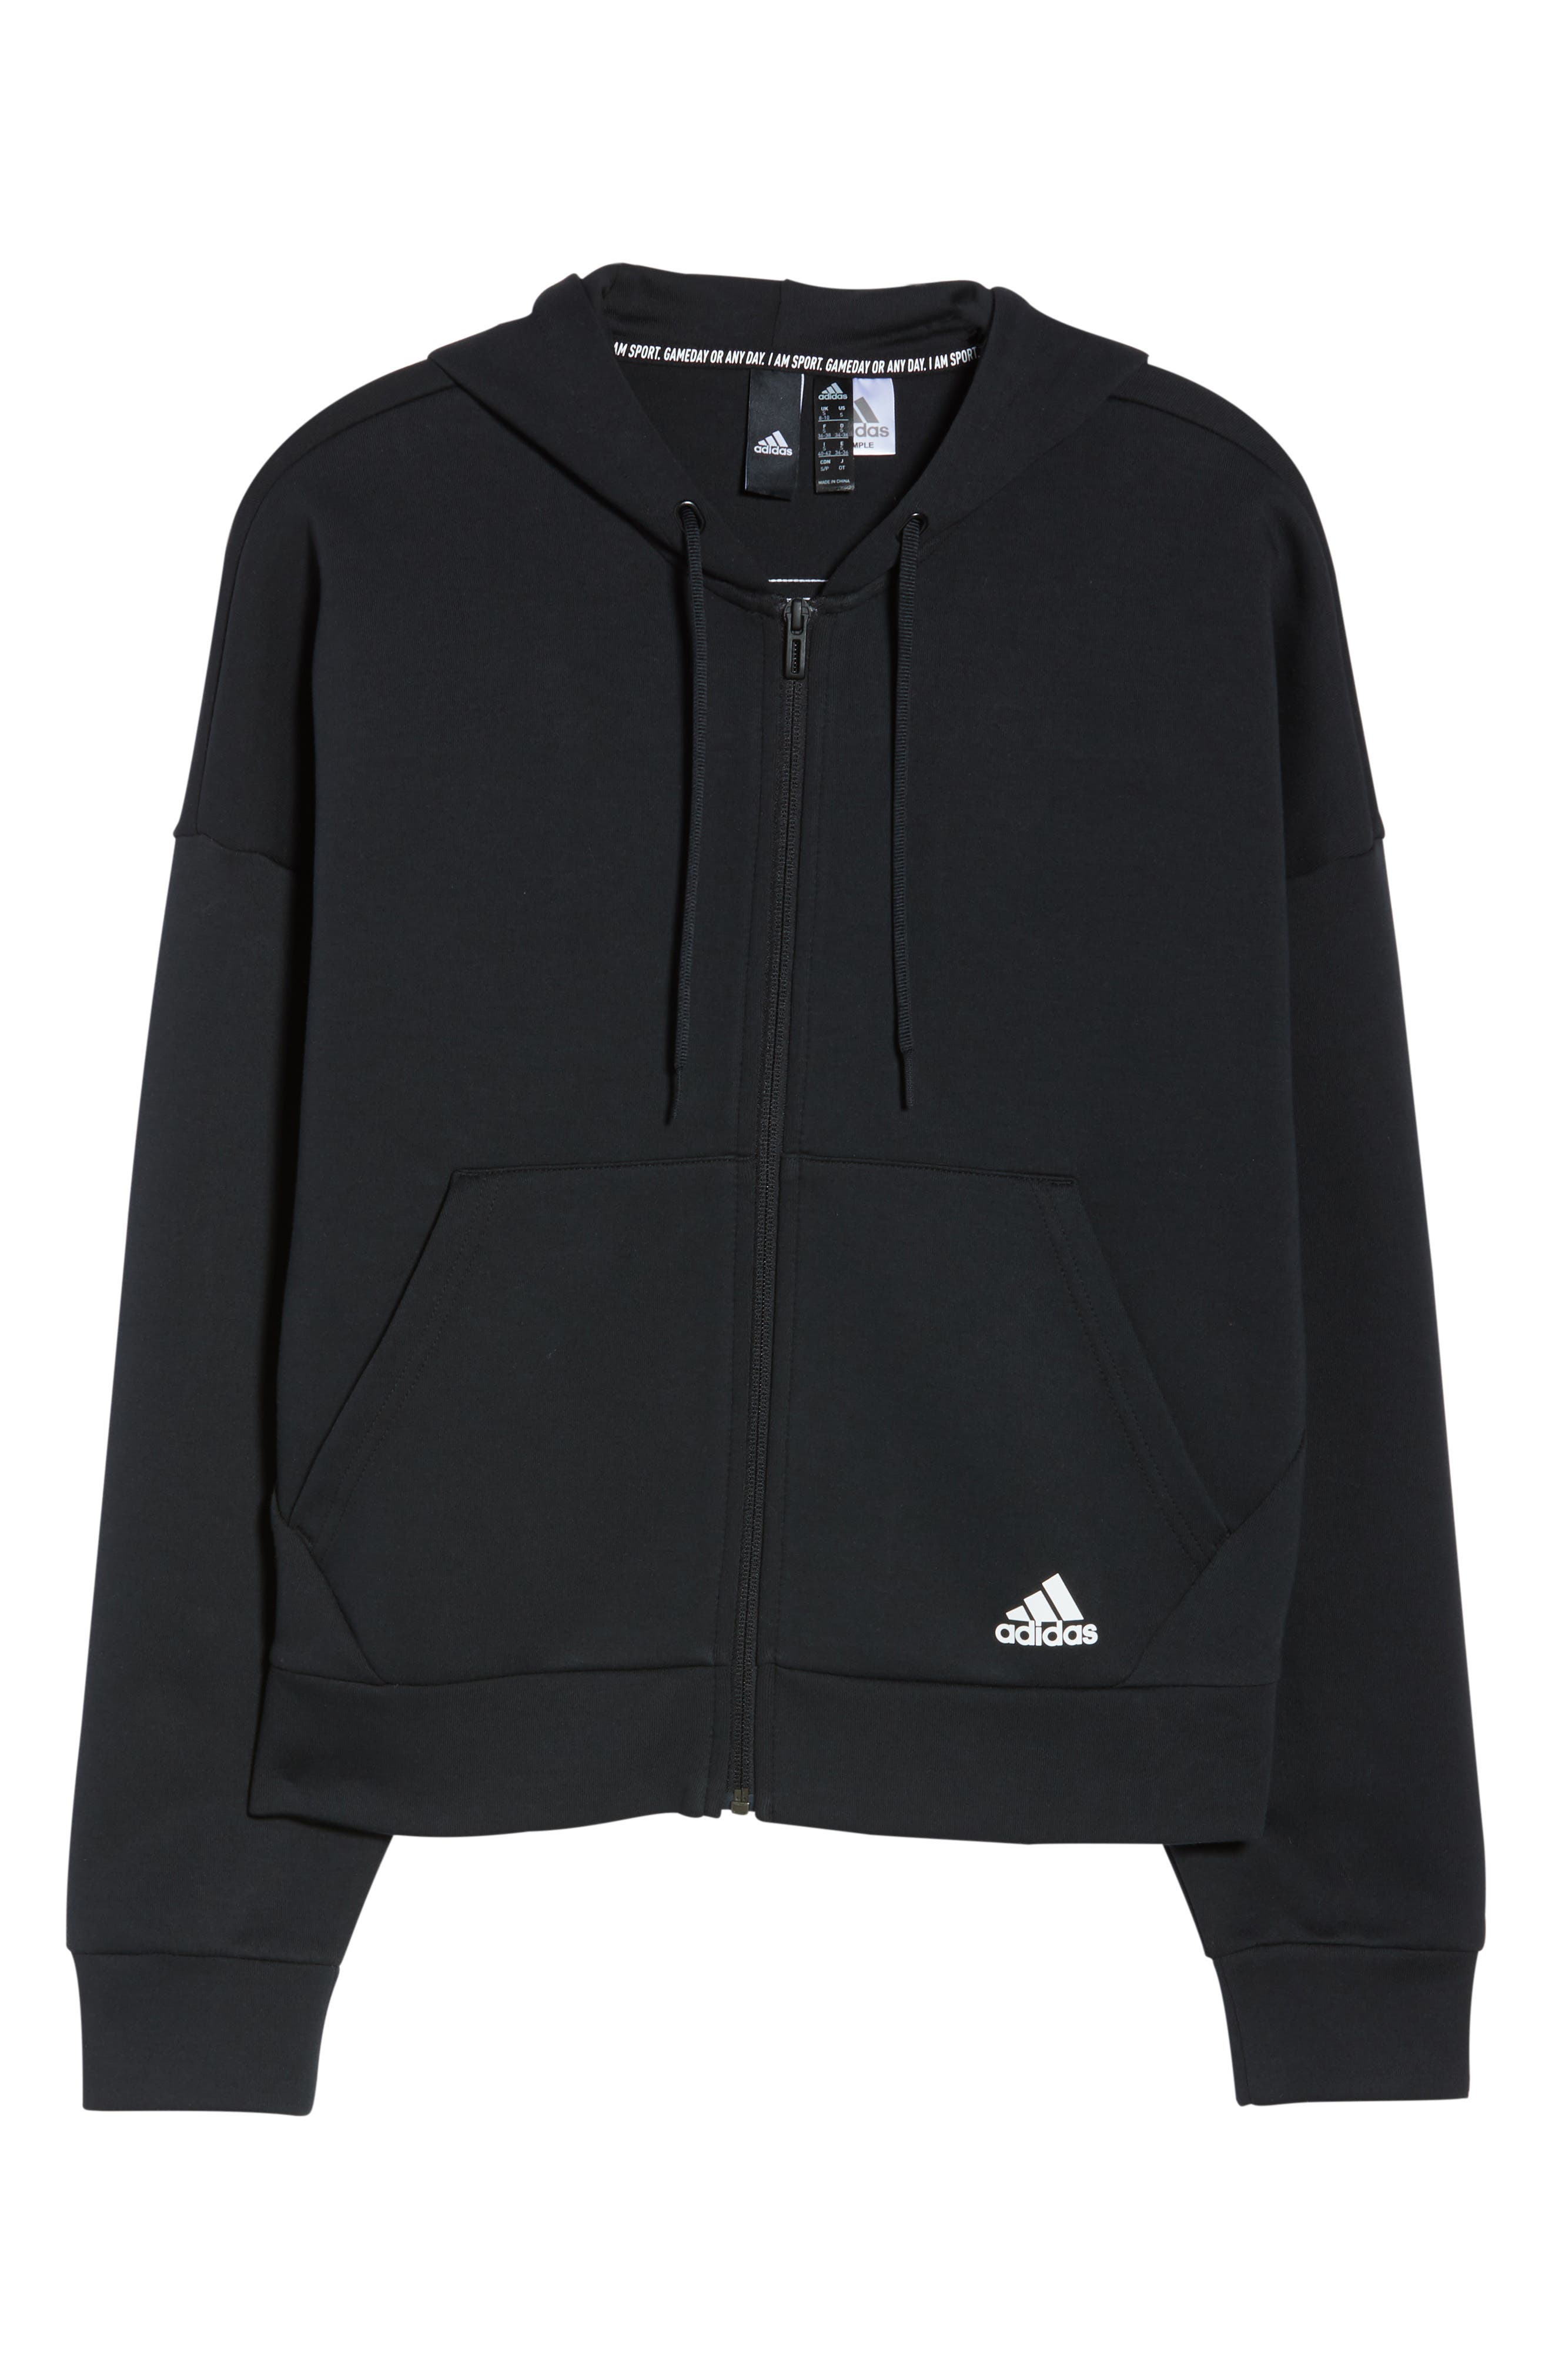 Women's adidas Clothing | Nordstrom